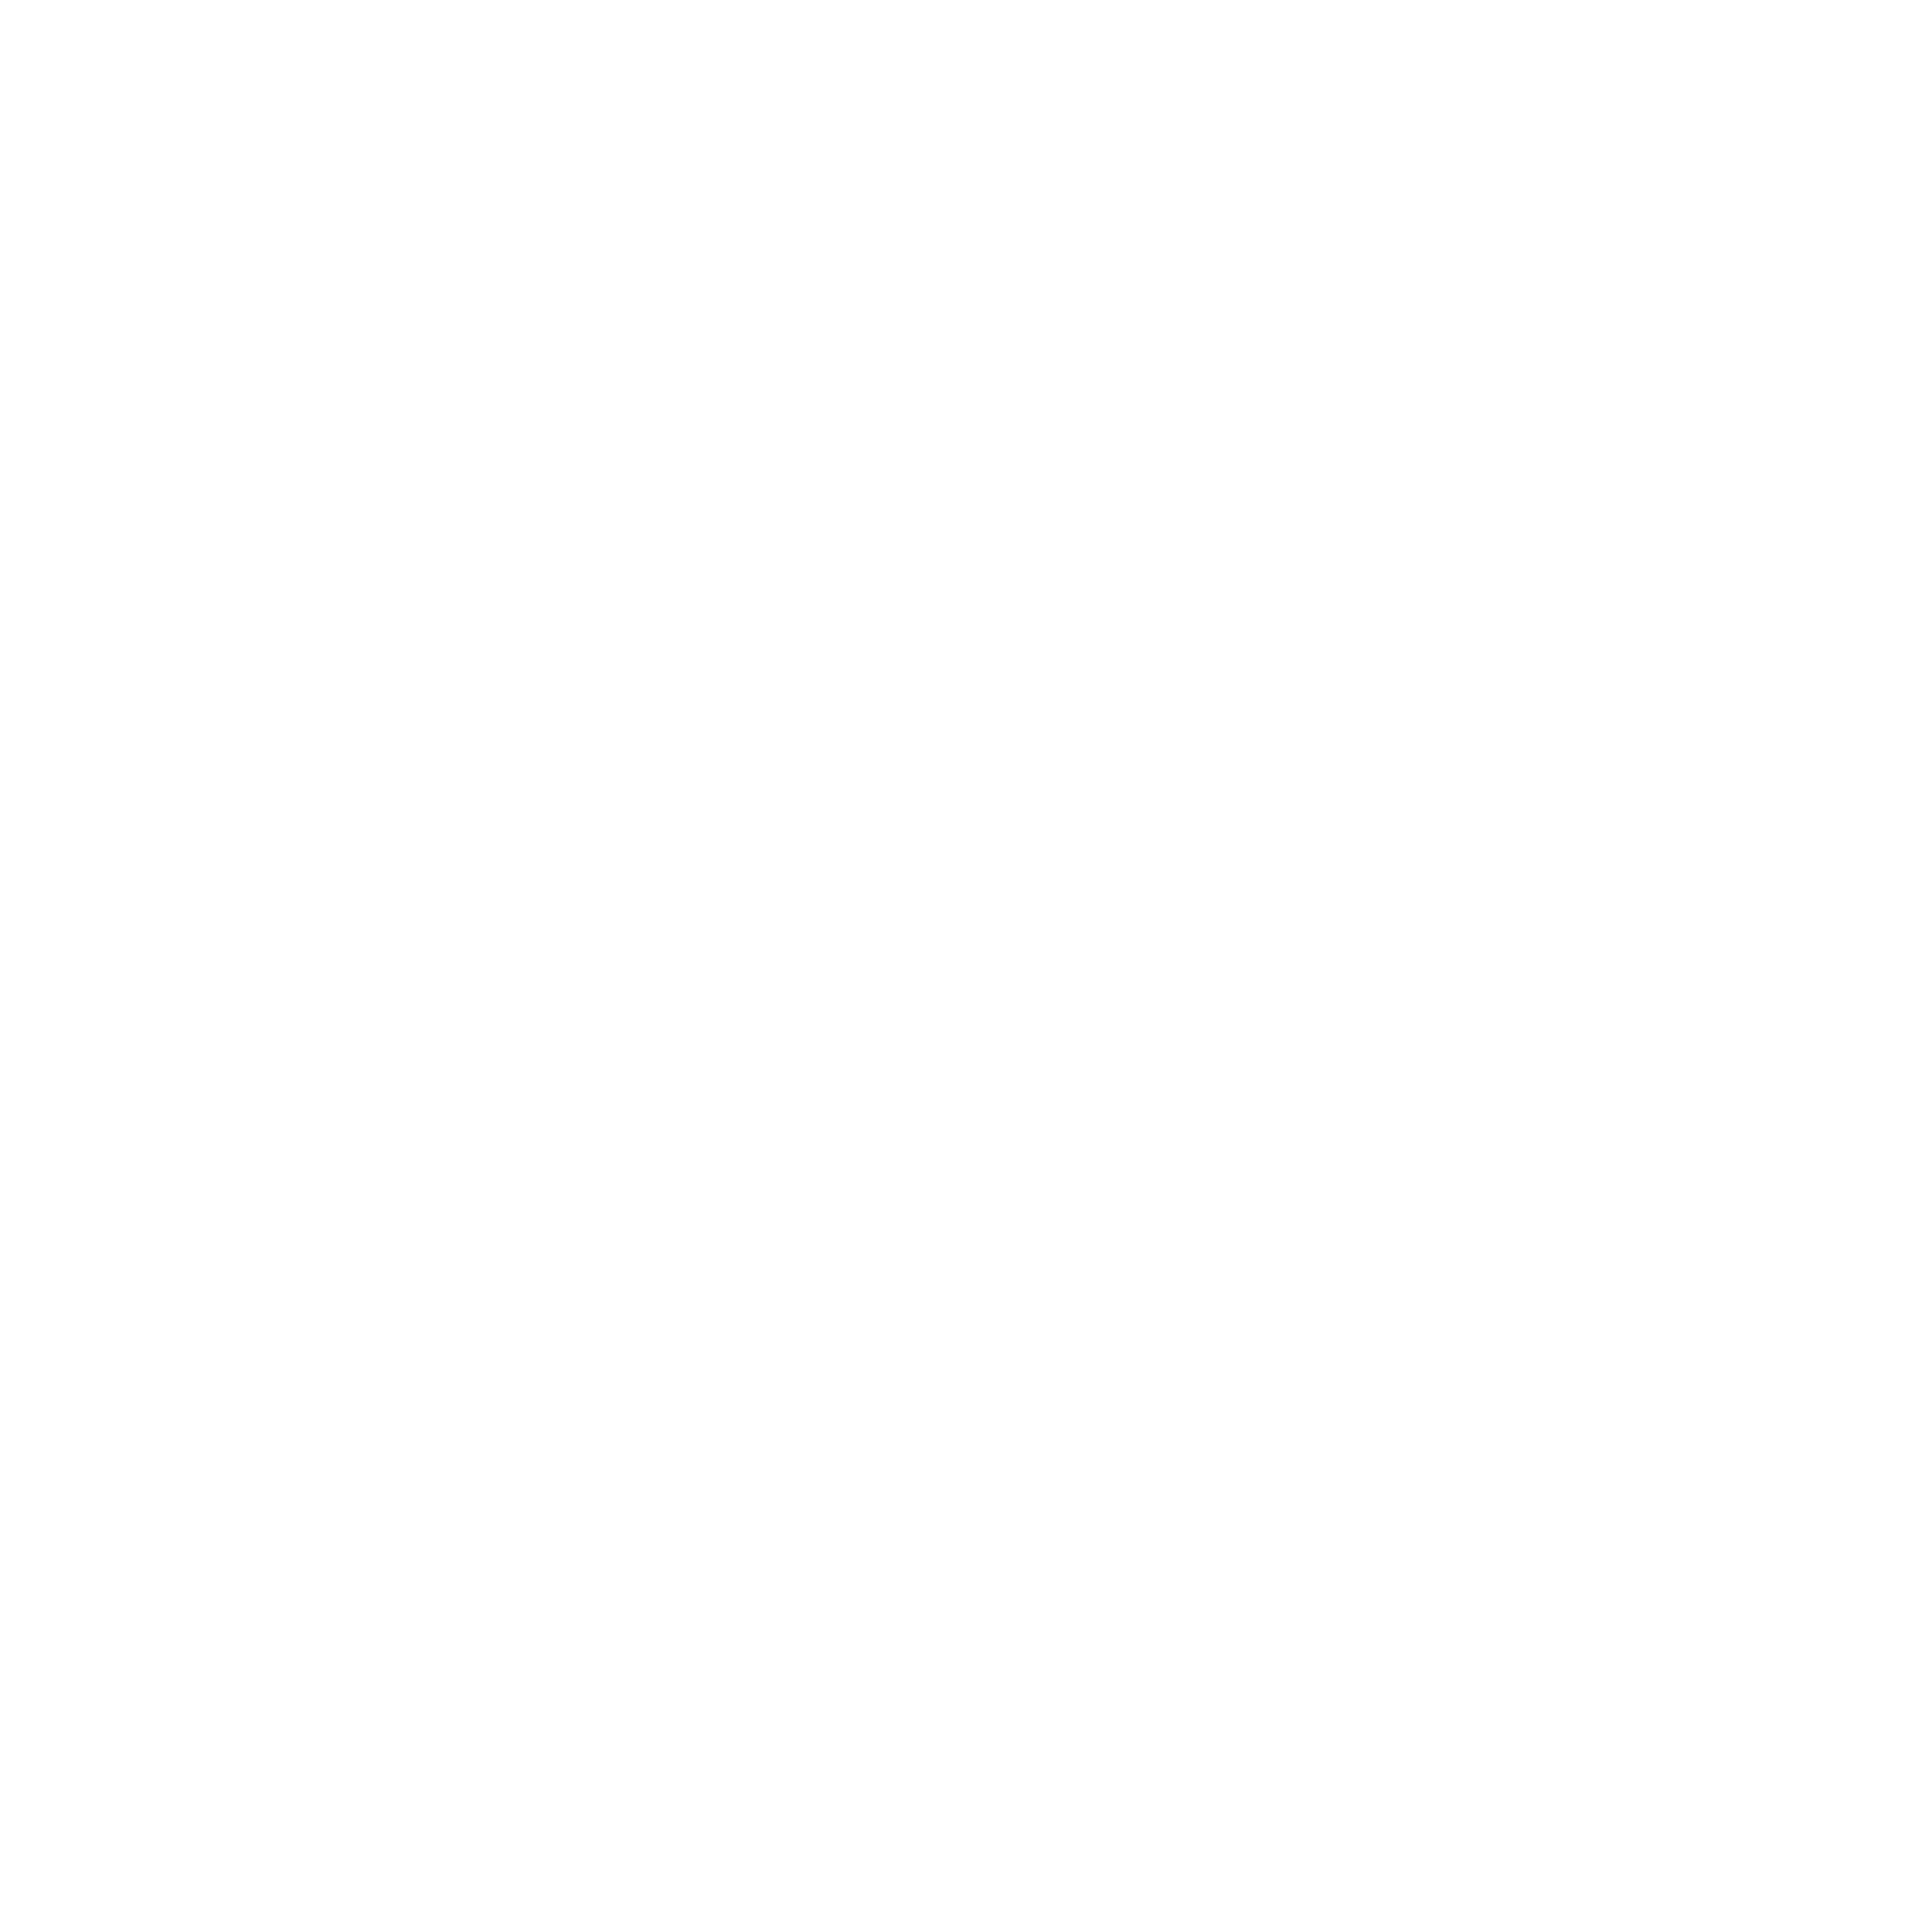 esther grace studio